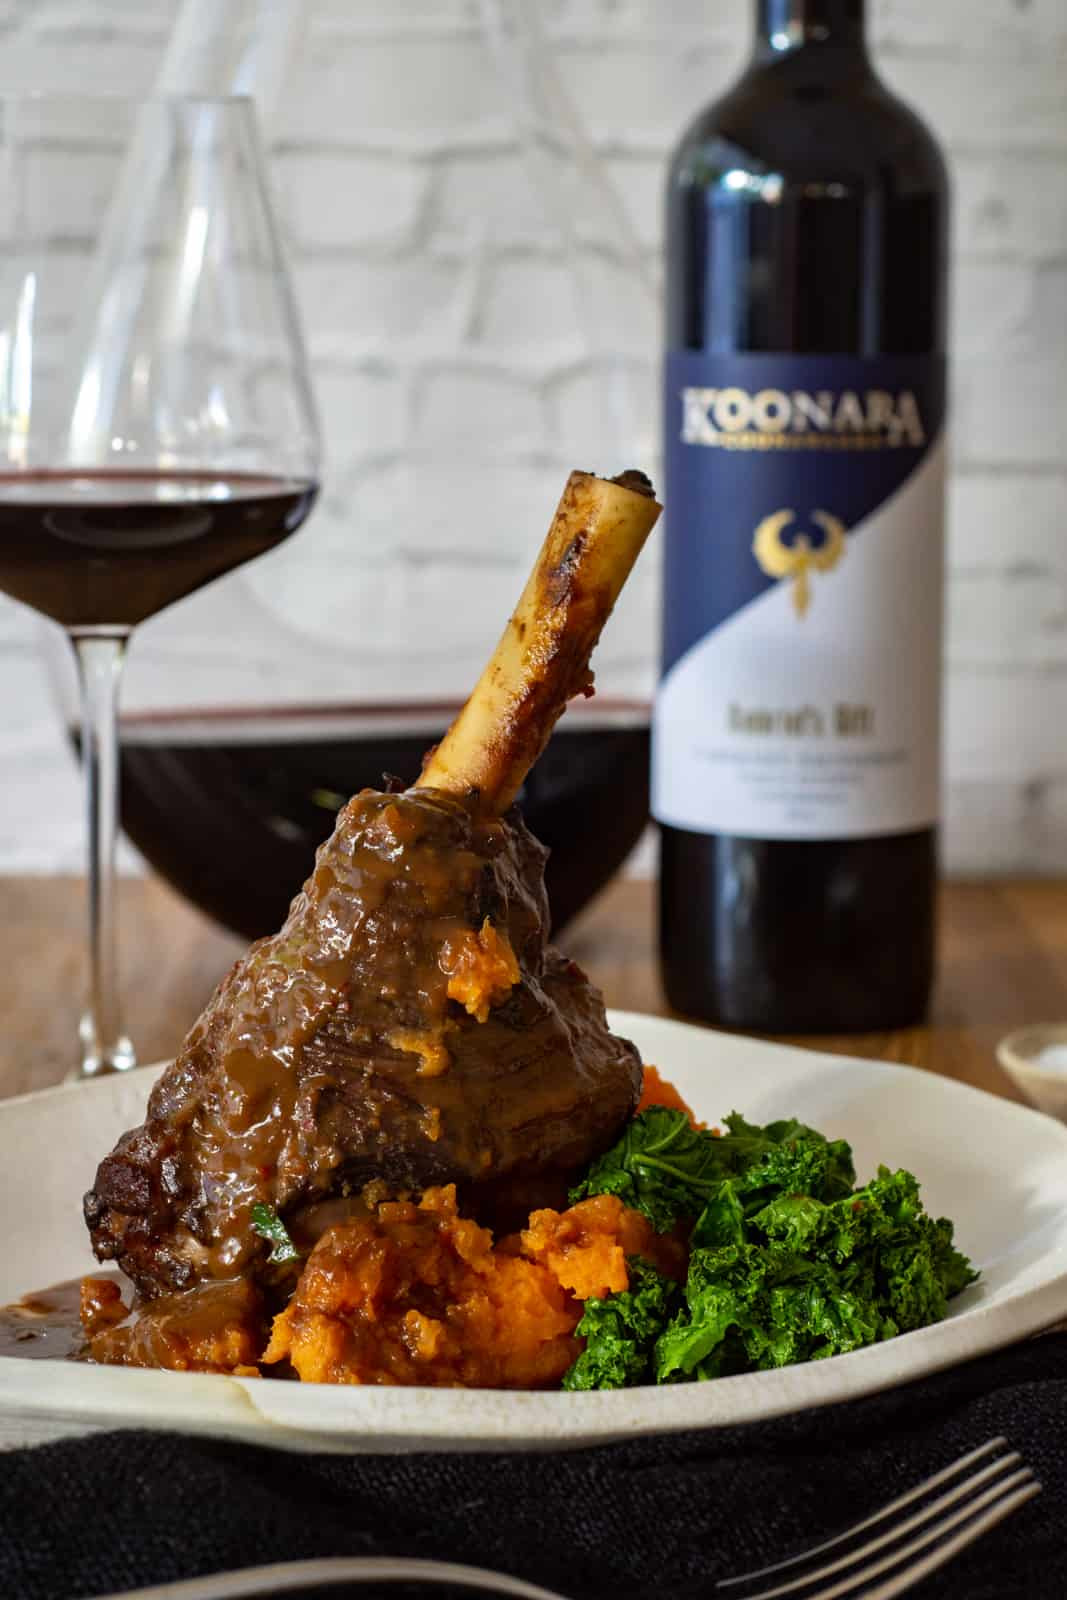 chilli & chocolate braised lamb shanks on a white plate with koonara cabernet sauvignon in background